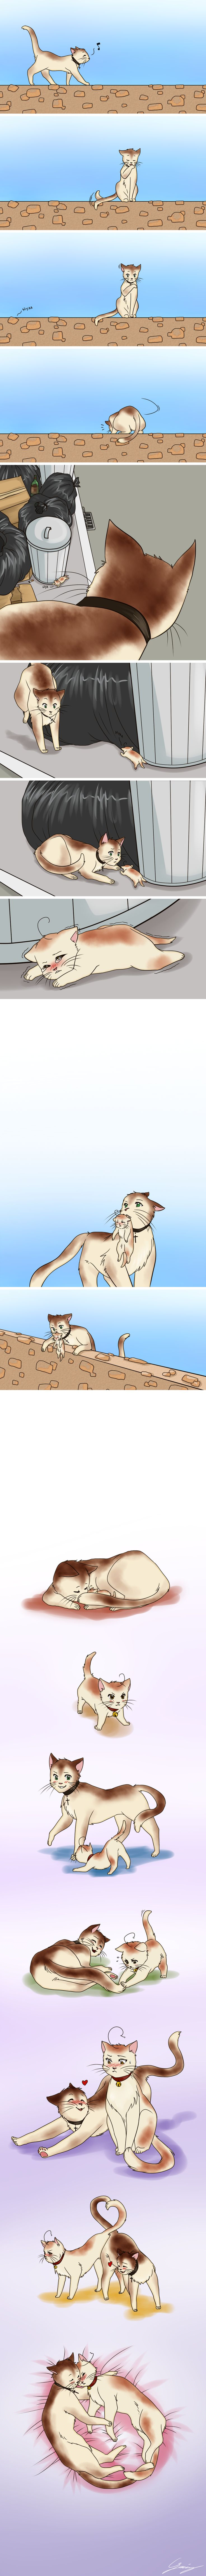 Spain and Romano cats.